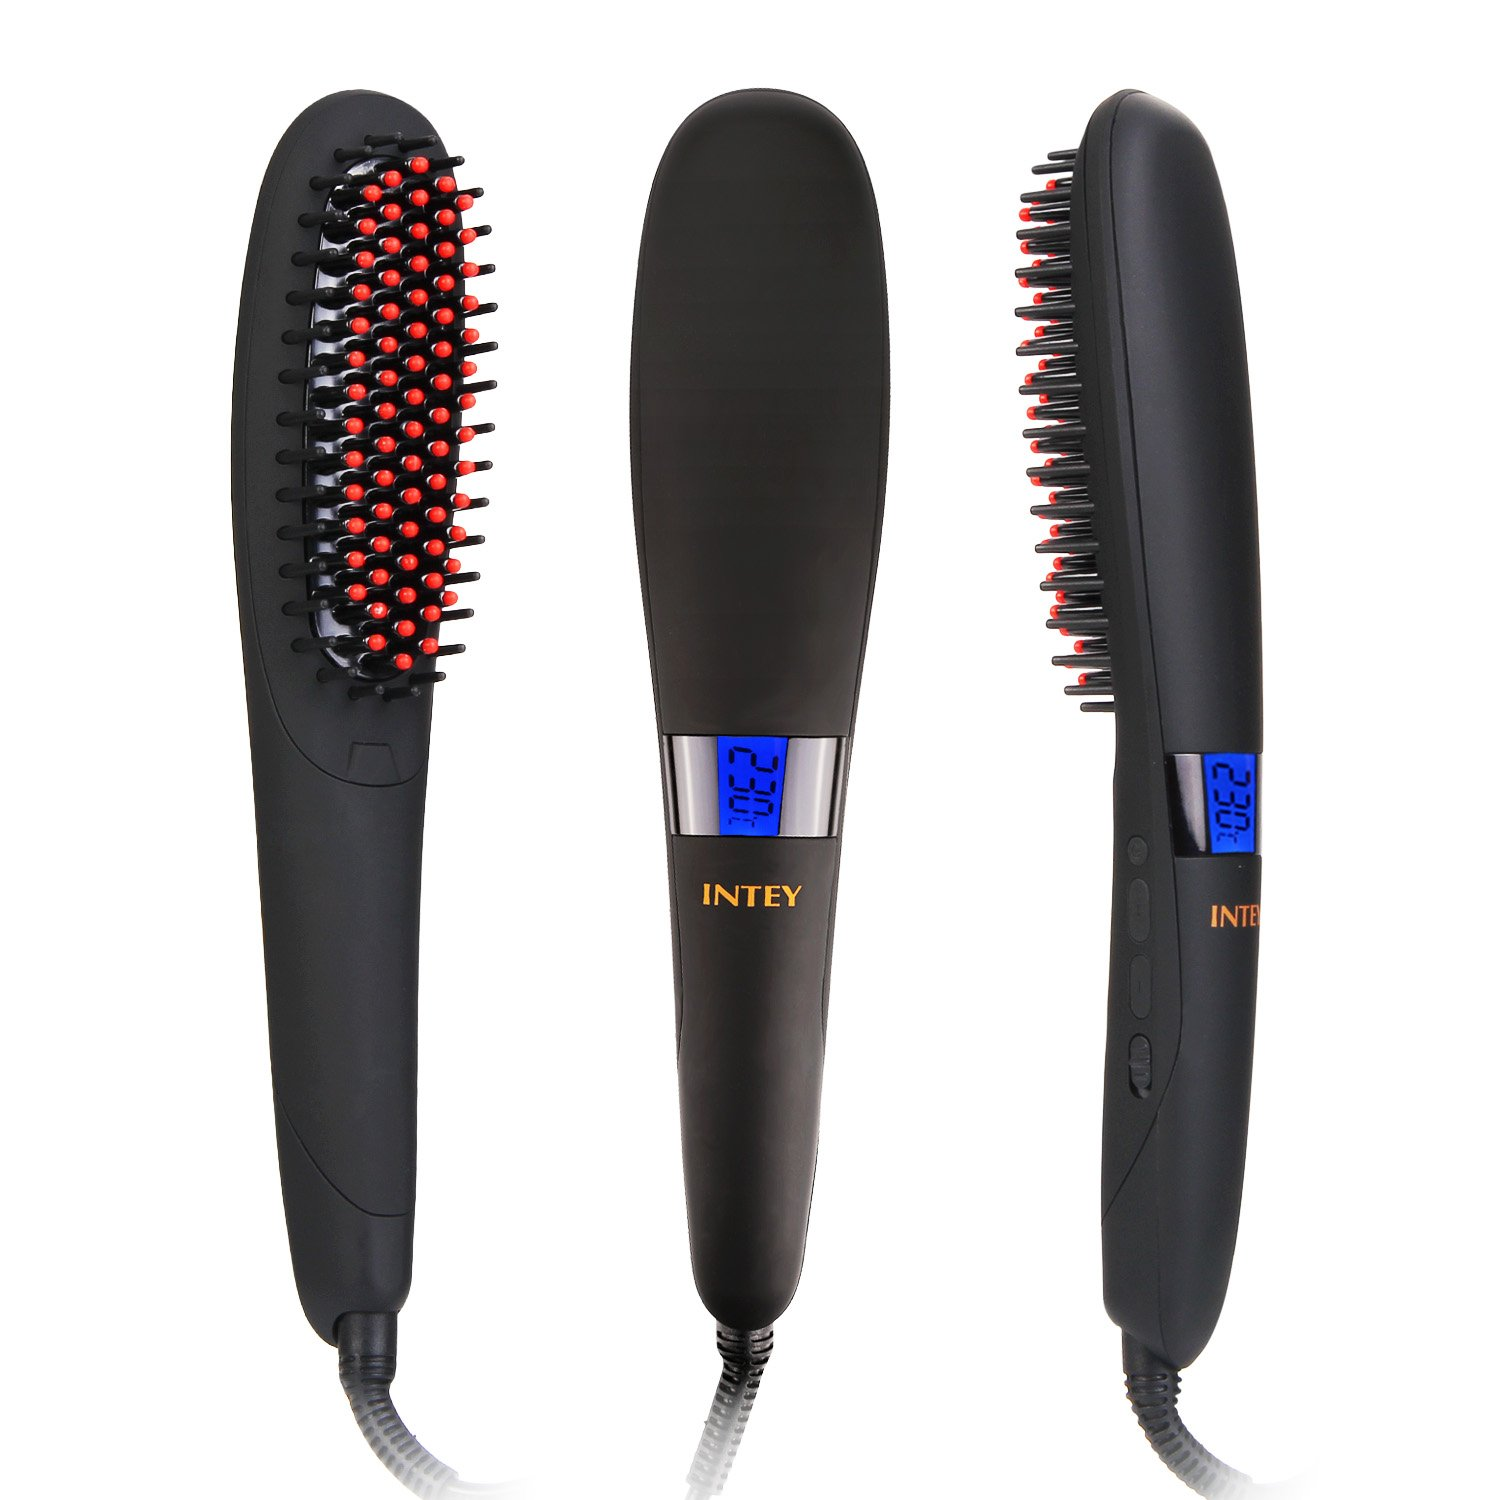 intey hair straightener brush ceramic